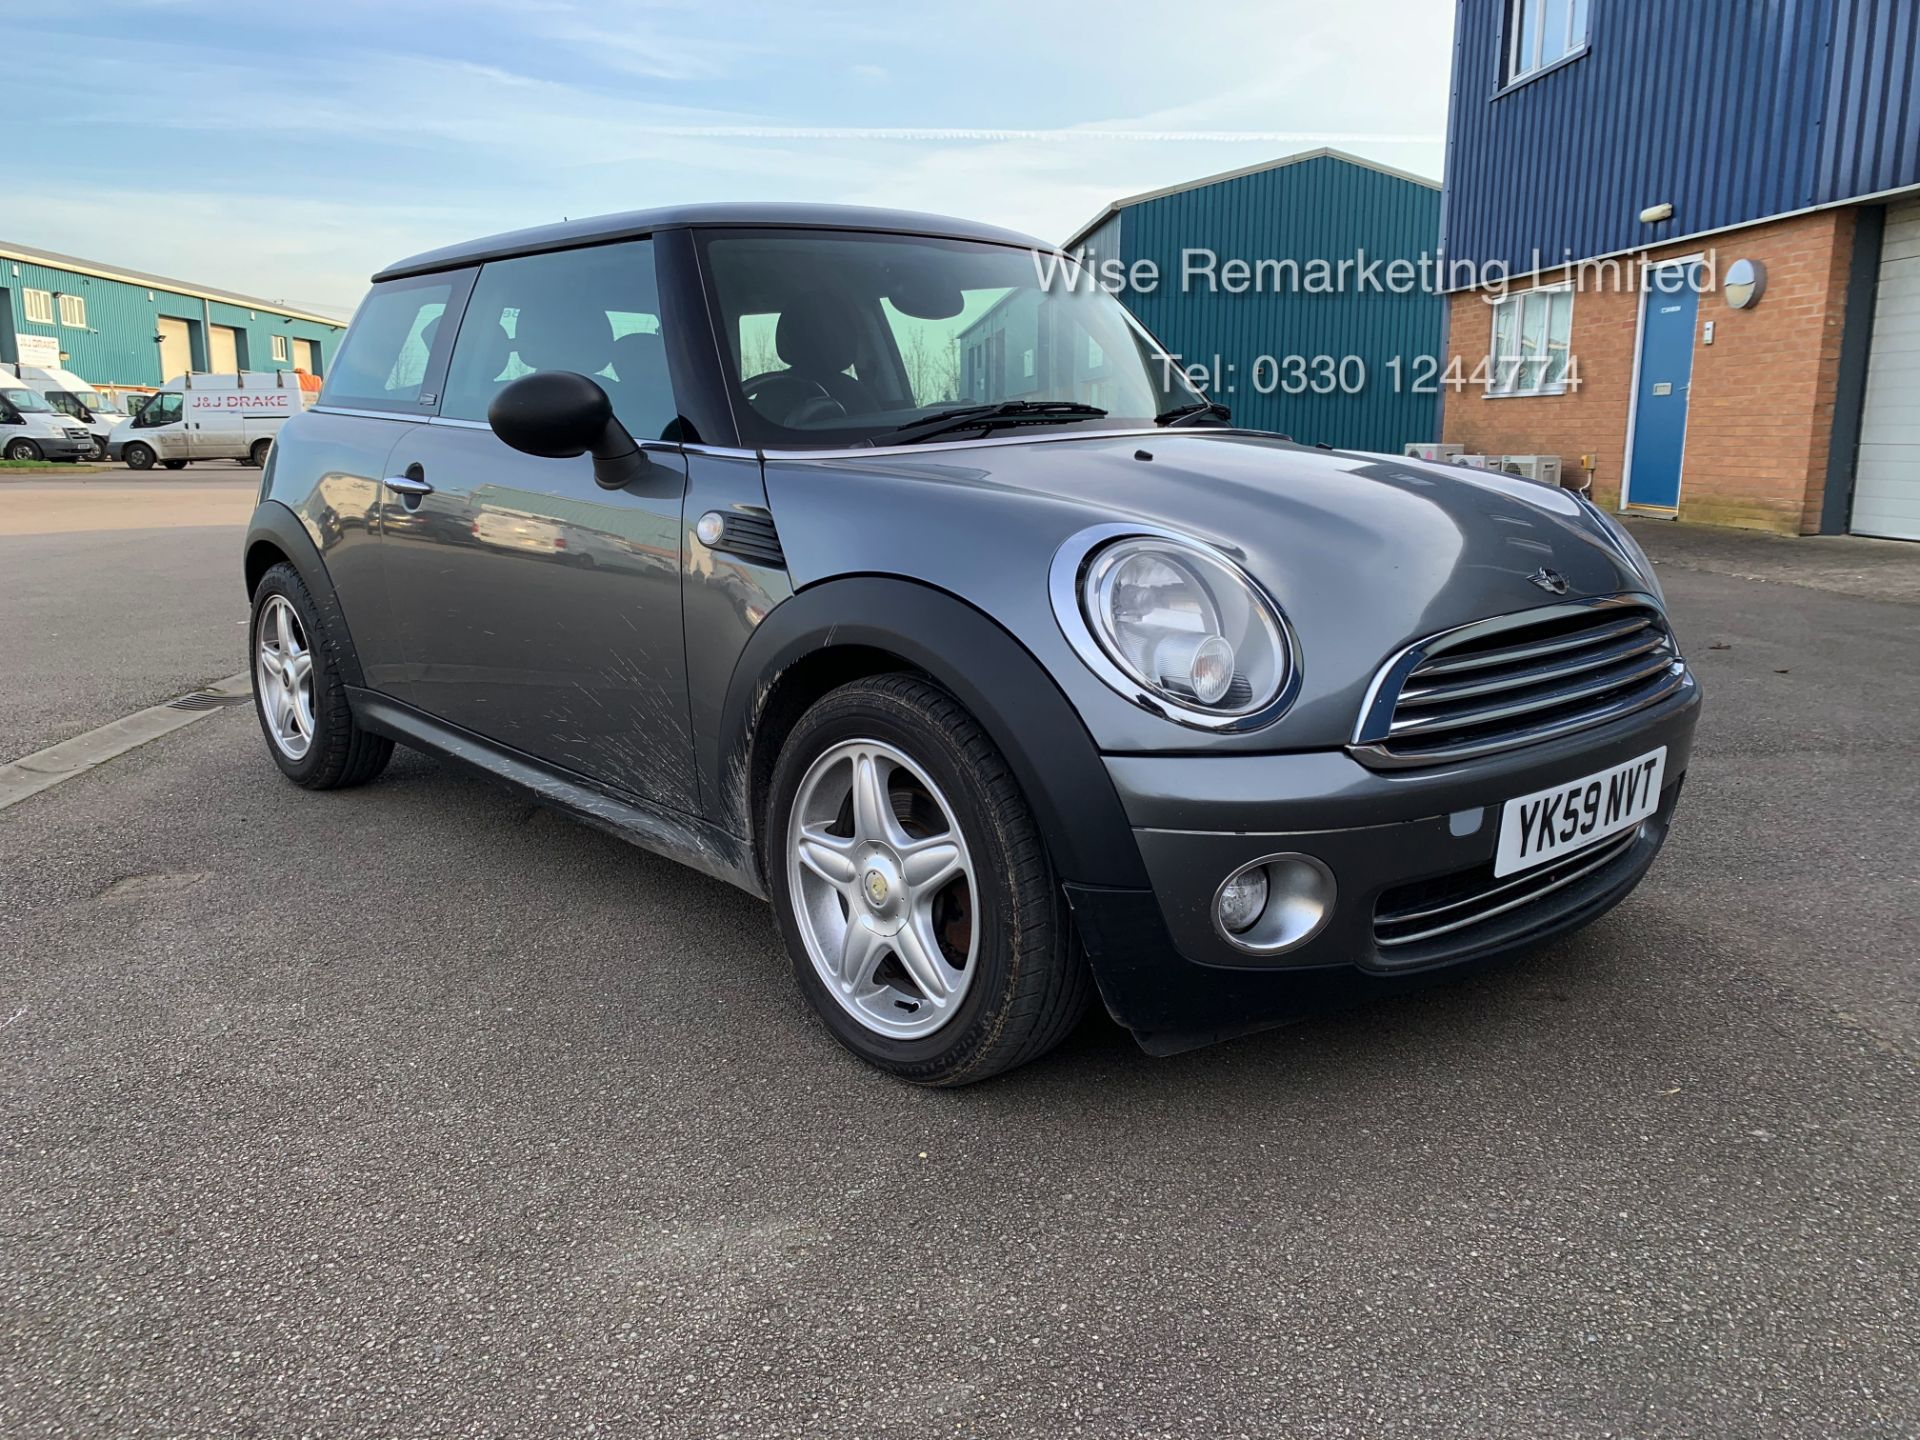 Lot 37 - (RESERVE MET) Mini One Graphite 1.4 Petrol - 2010 Model - Service History - 6 Speed - Air Con -